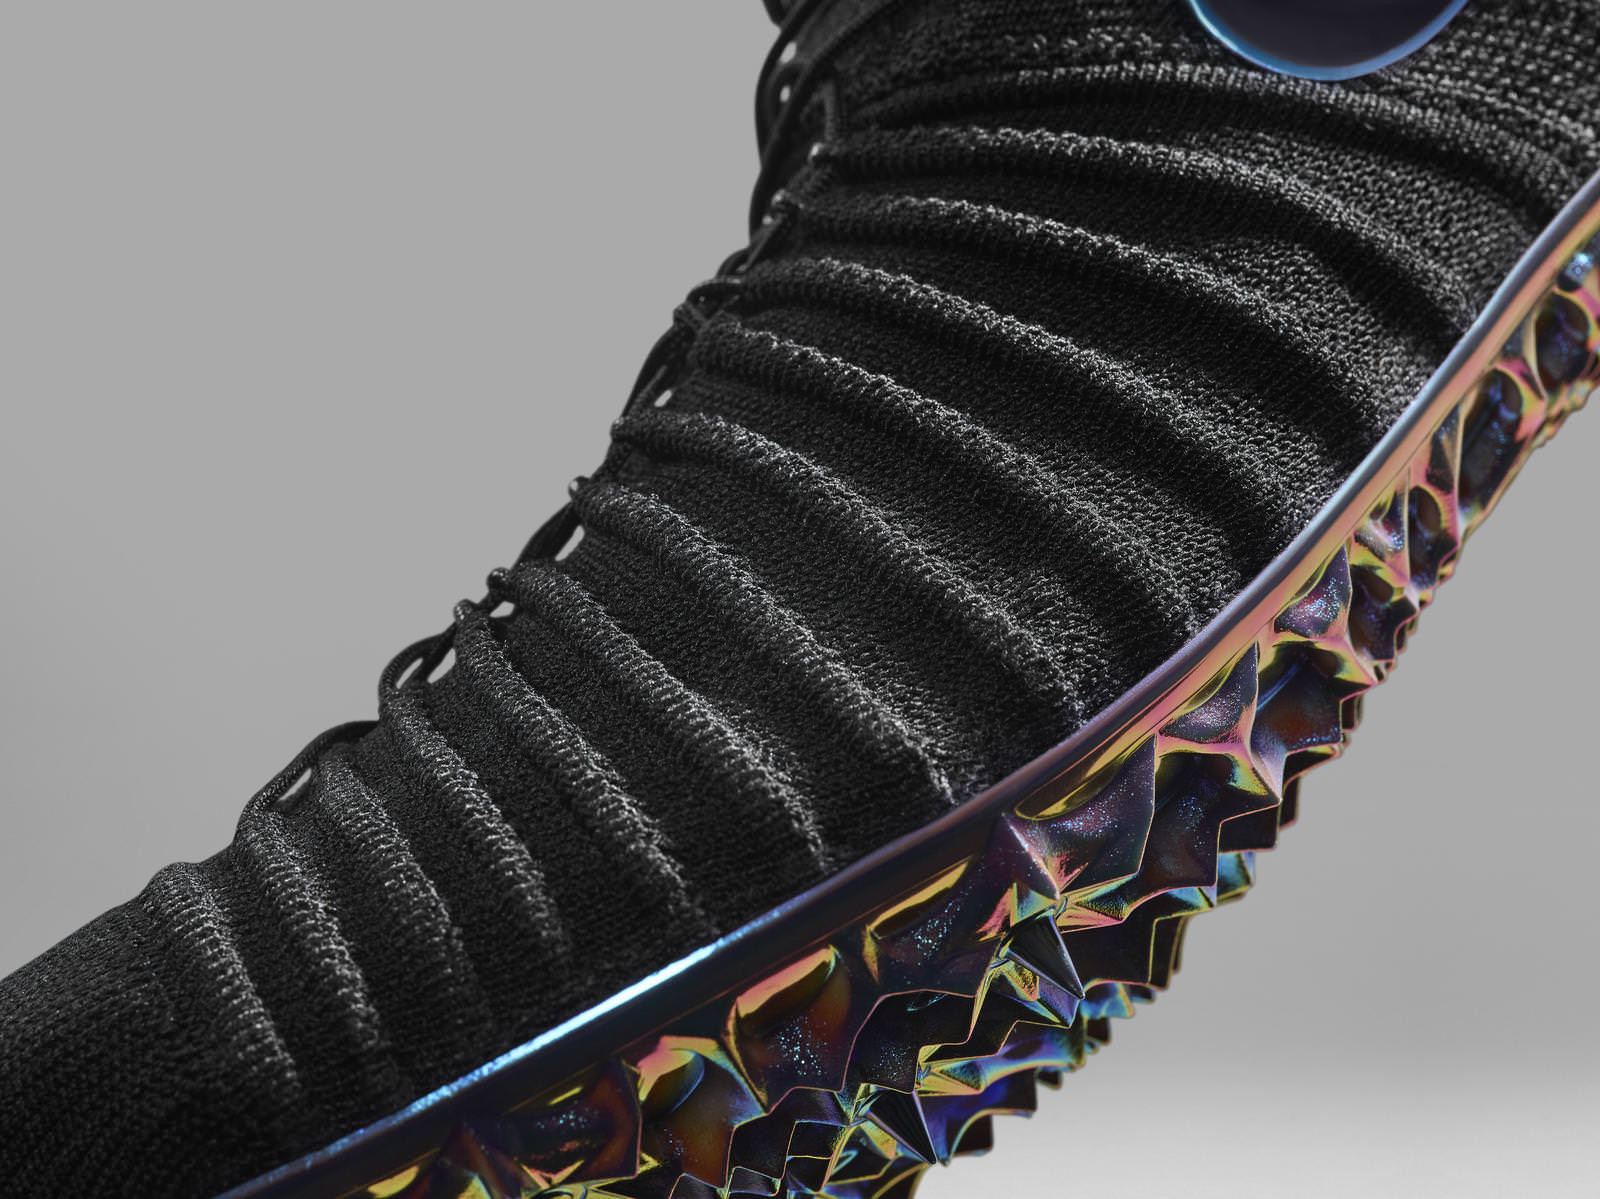 Nike_Zoom_Superfly_Flyknit-3dprin-shoe-2